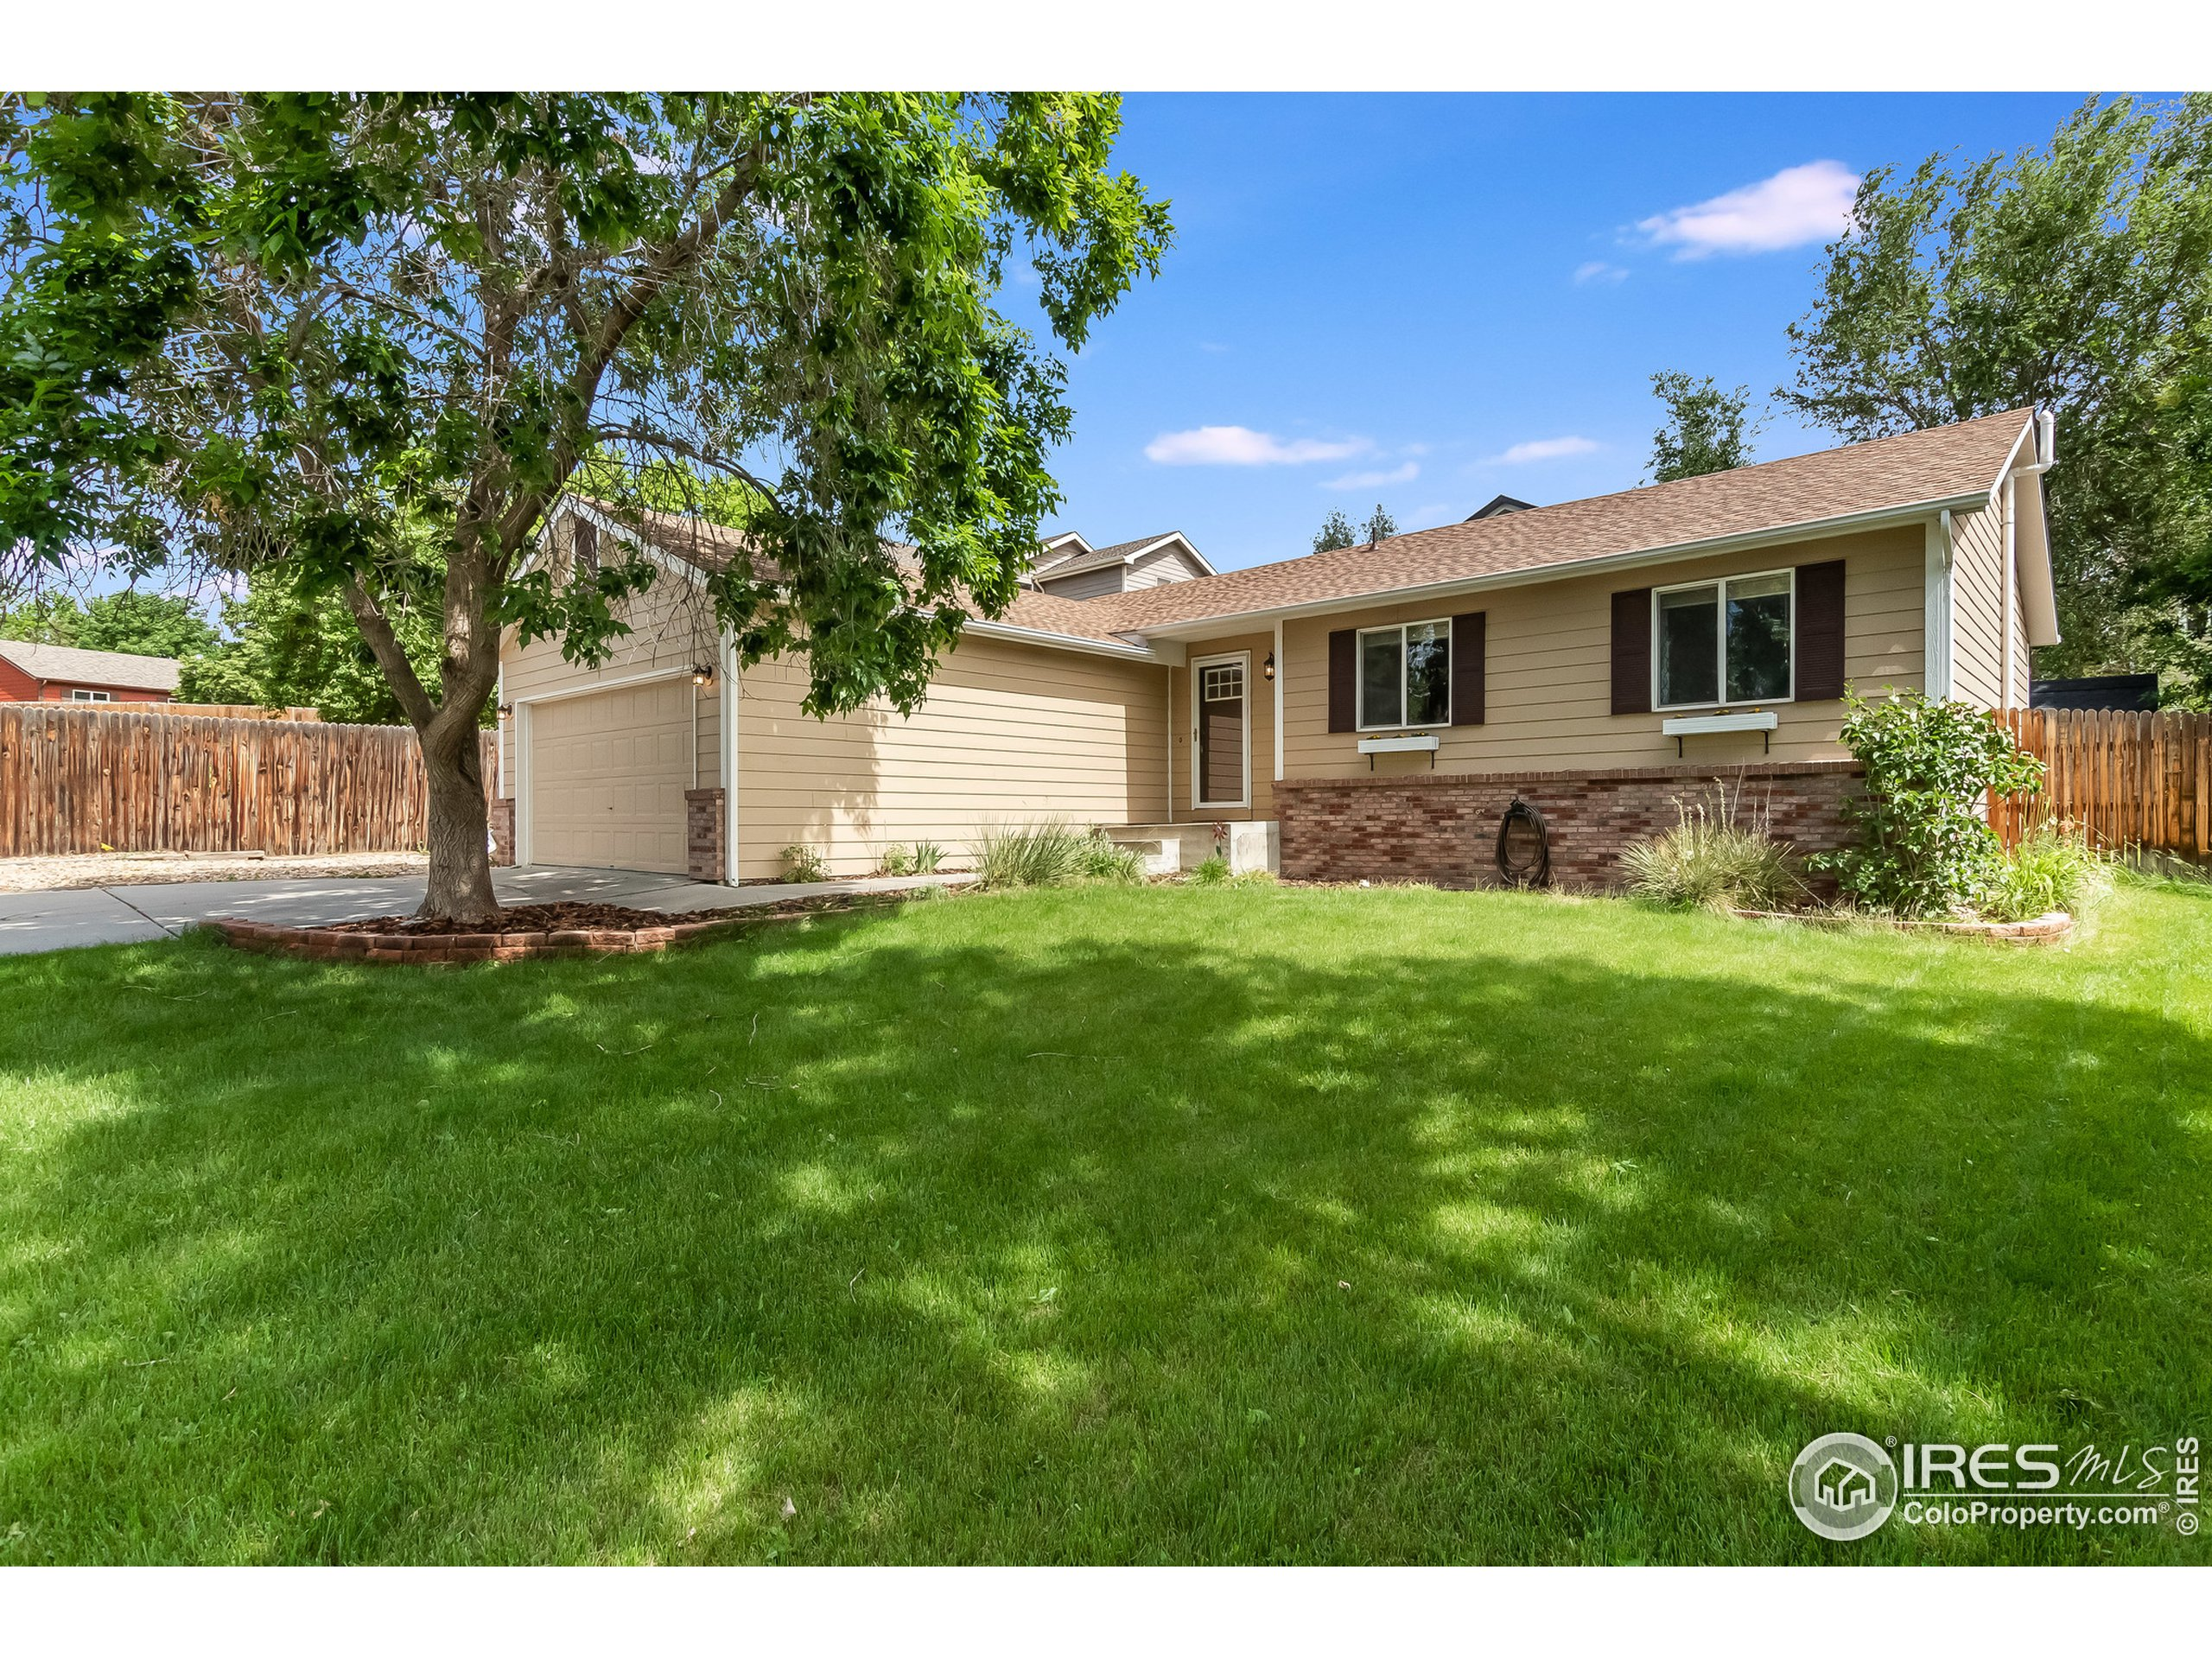 Don't miss this super cute and very upgraded ranch style house on a cul-de-sac in one of Fort Collins' most sought-after neighborhoods!  Gorgeous hickory hardwood floors in main living areas, premium granite counters in kitchen and baths, tile floors in baths, new carpet in bedrooms, marvelous distressed-finish kitchen cabinets, stainless steel appliances, a large private yard with deck and a shed, and the cleanest garage in town!  Brand new roof, Radon system installed, newer paint, this house is move-in ready!